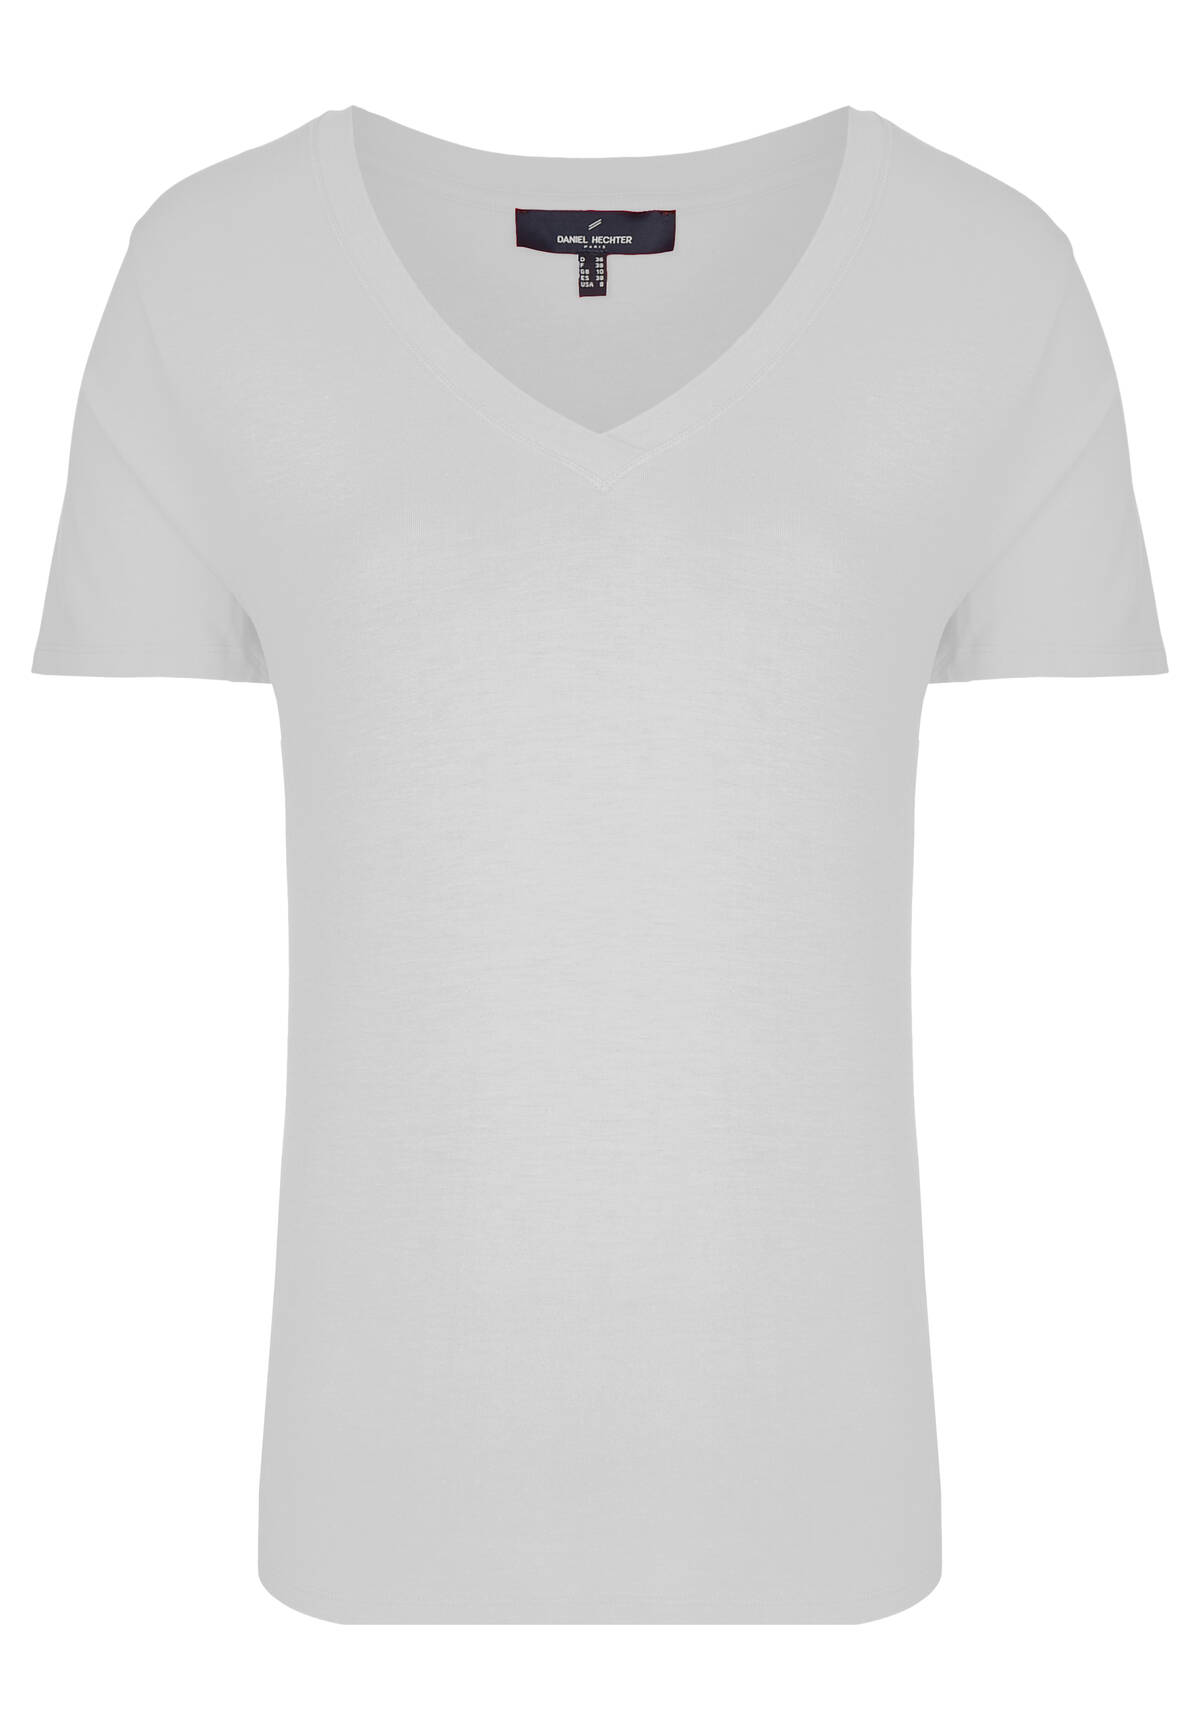 Sportives Shirt aus Viskose / V-Neck Shirt